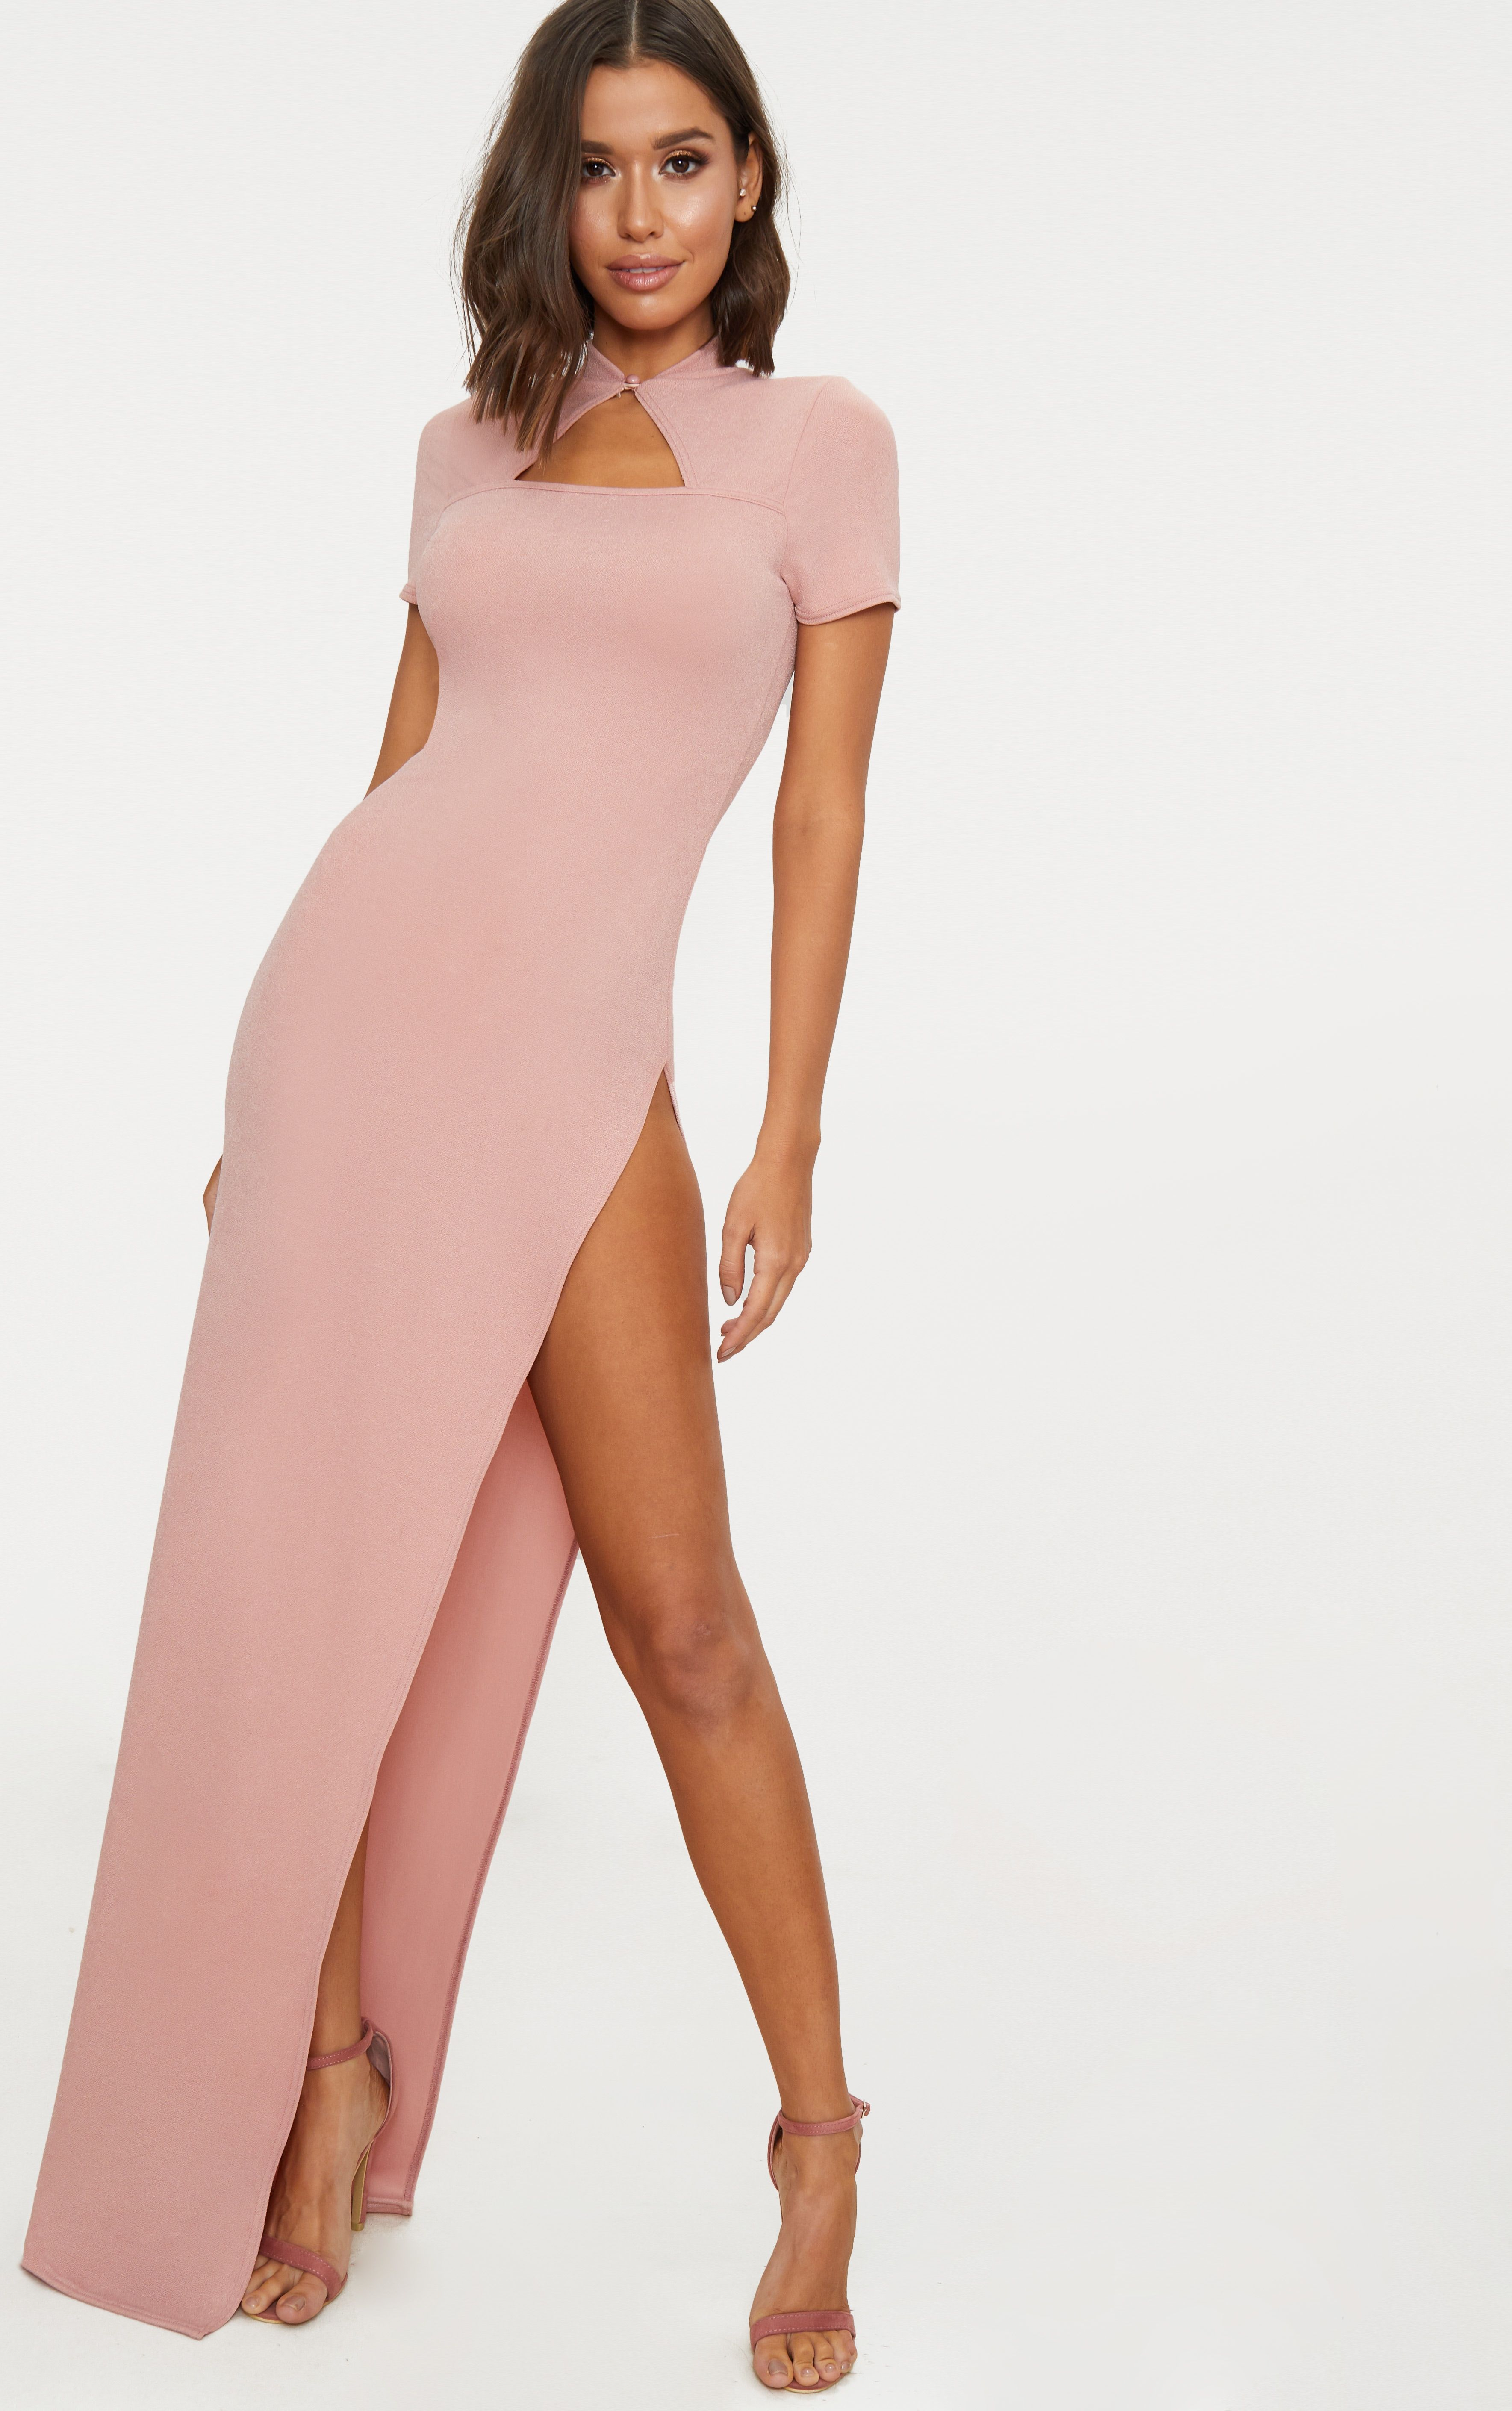 Real Sale Online PRETTYLITTLETHING Oriental Cut Out Detail Maxi Dress Store jfwz4NAc